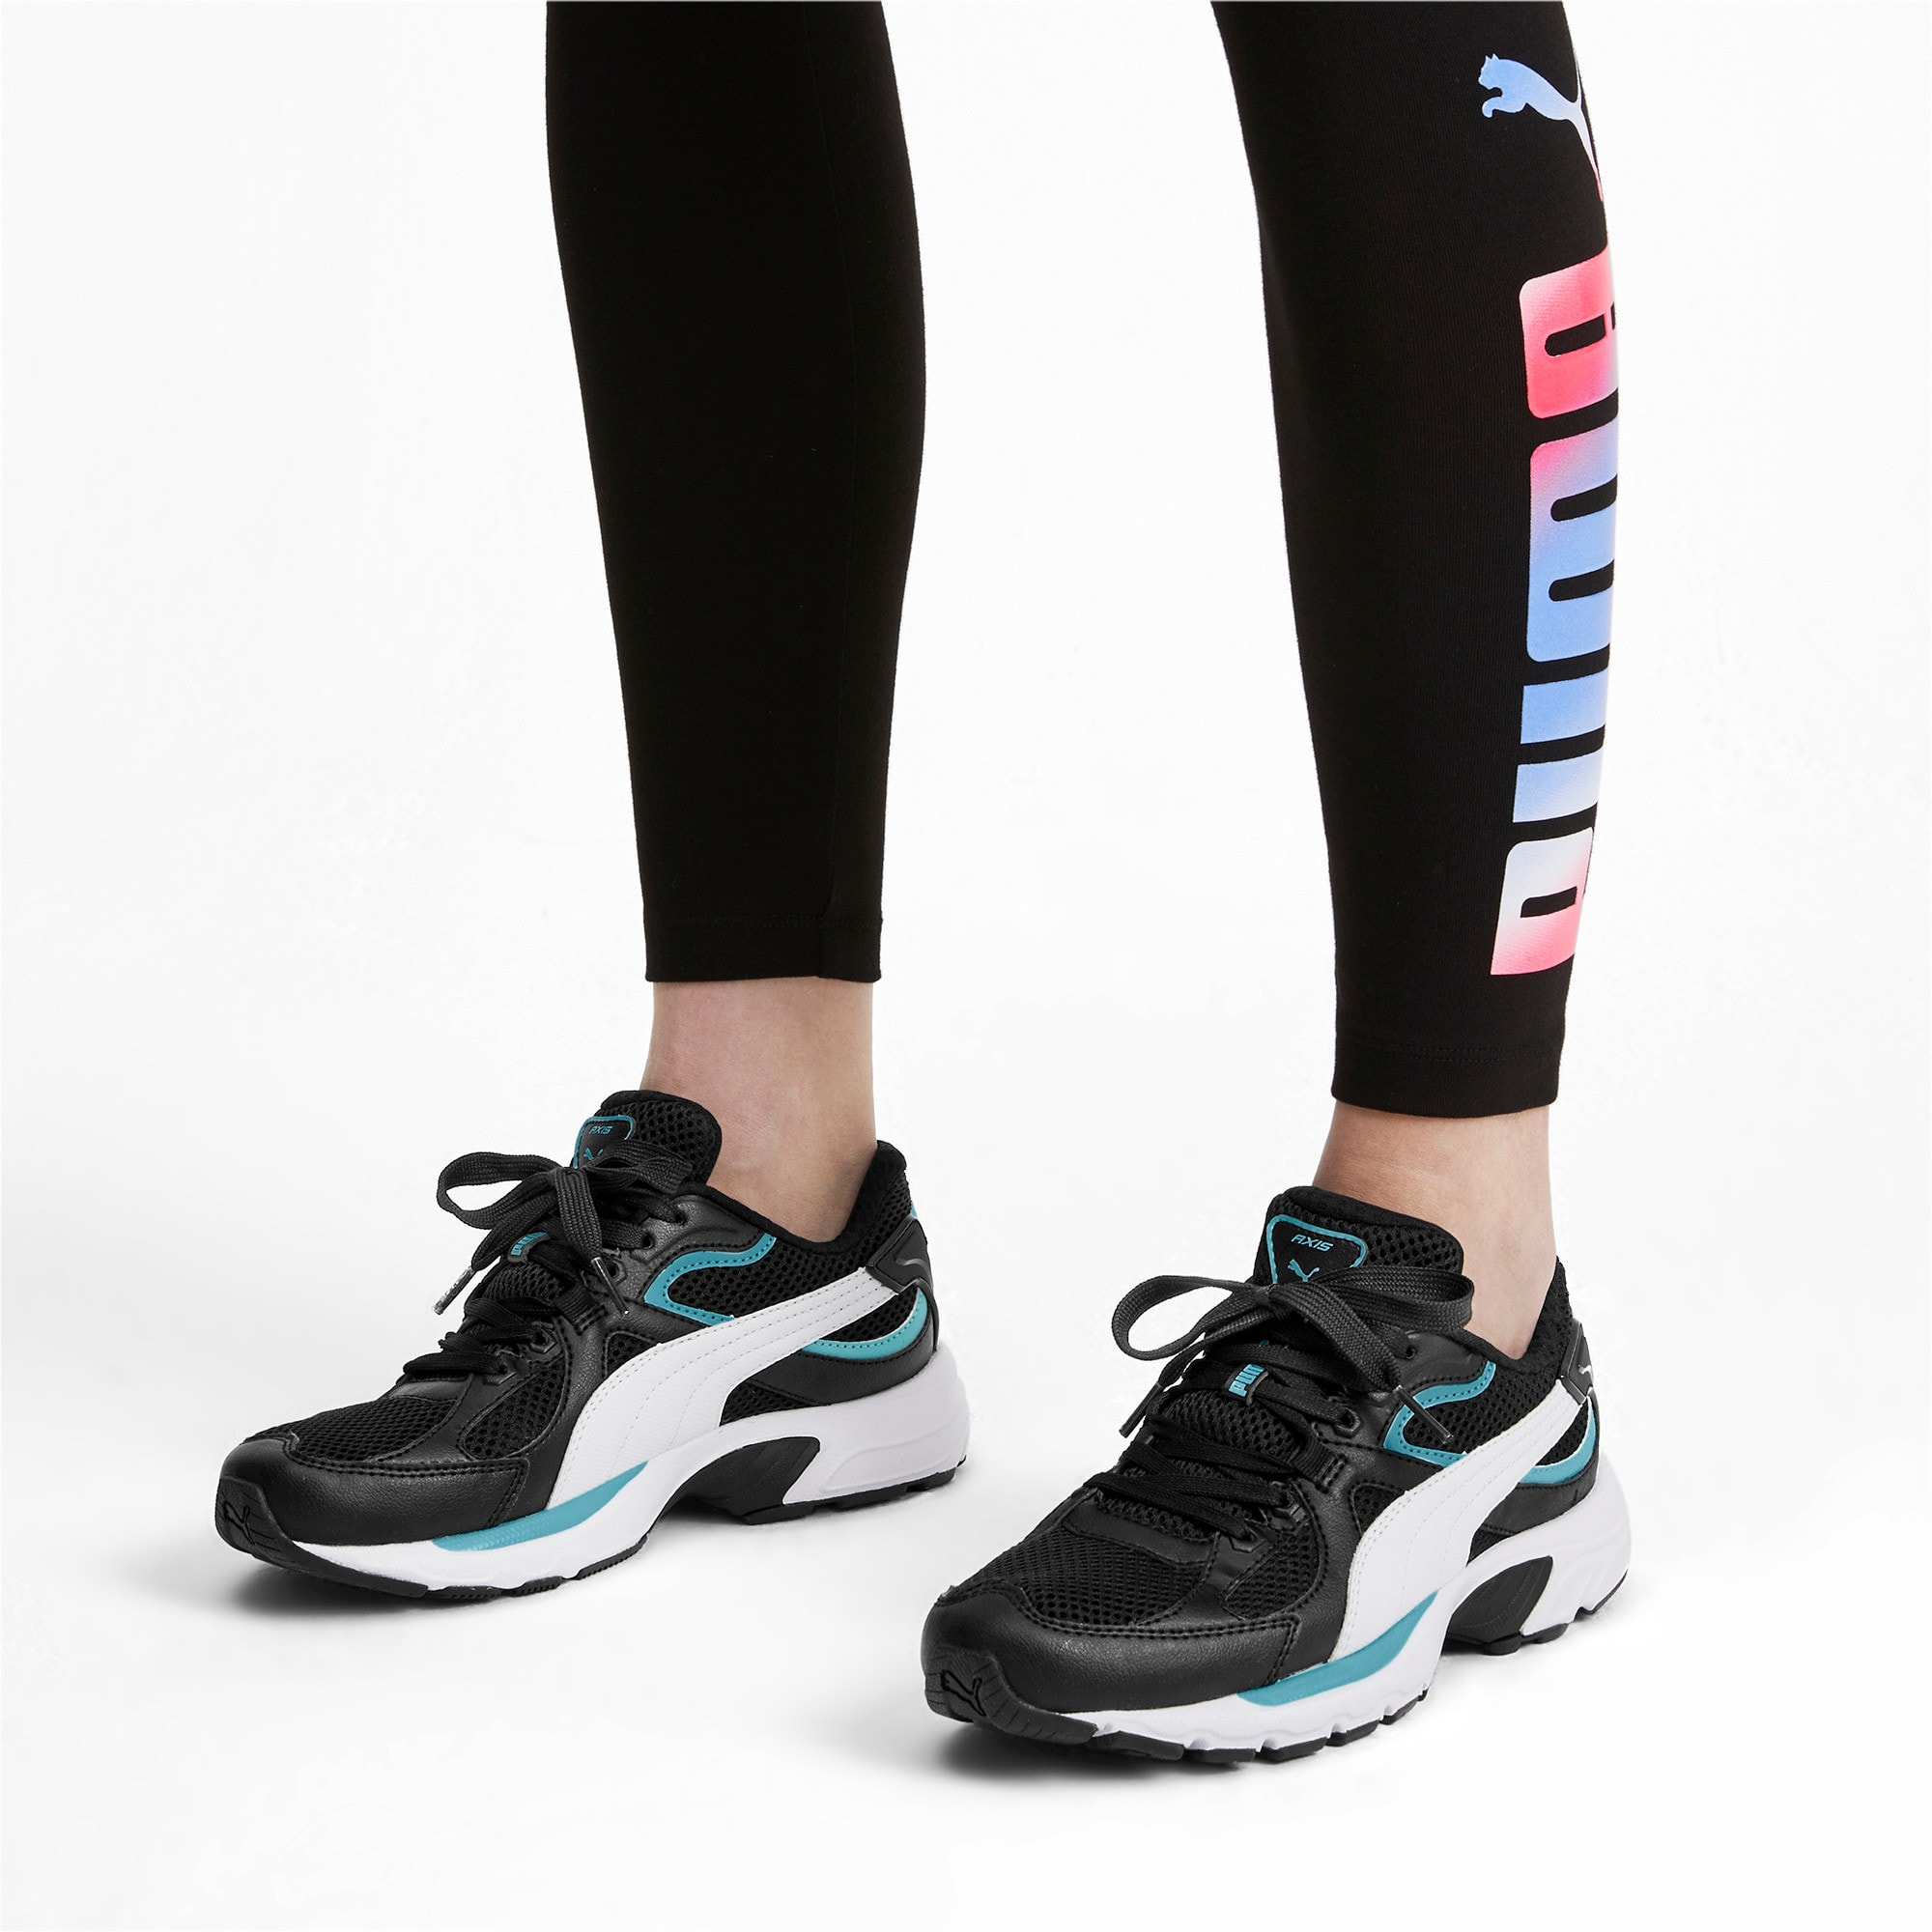 Thumbnail 4 of Axis Plus 90s Trainers, Puma Black-White-Milky Blue, medium-IND